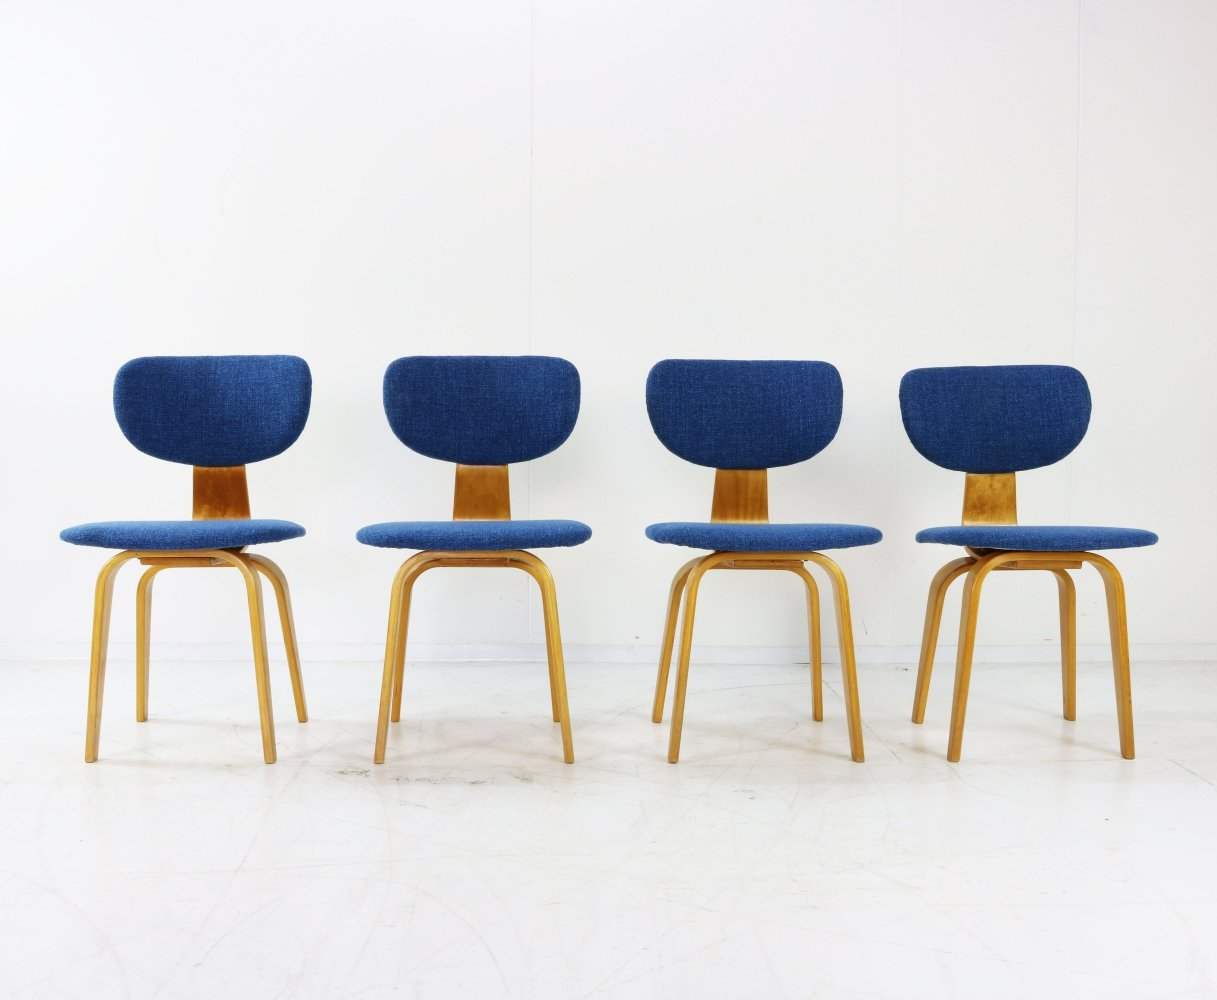 Set of 4 CB02 dining chairs by Cees Braakman for Pastoe, 1950s